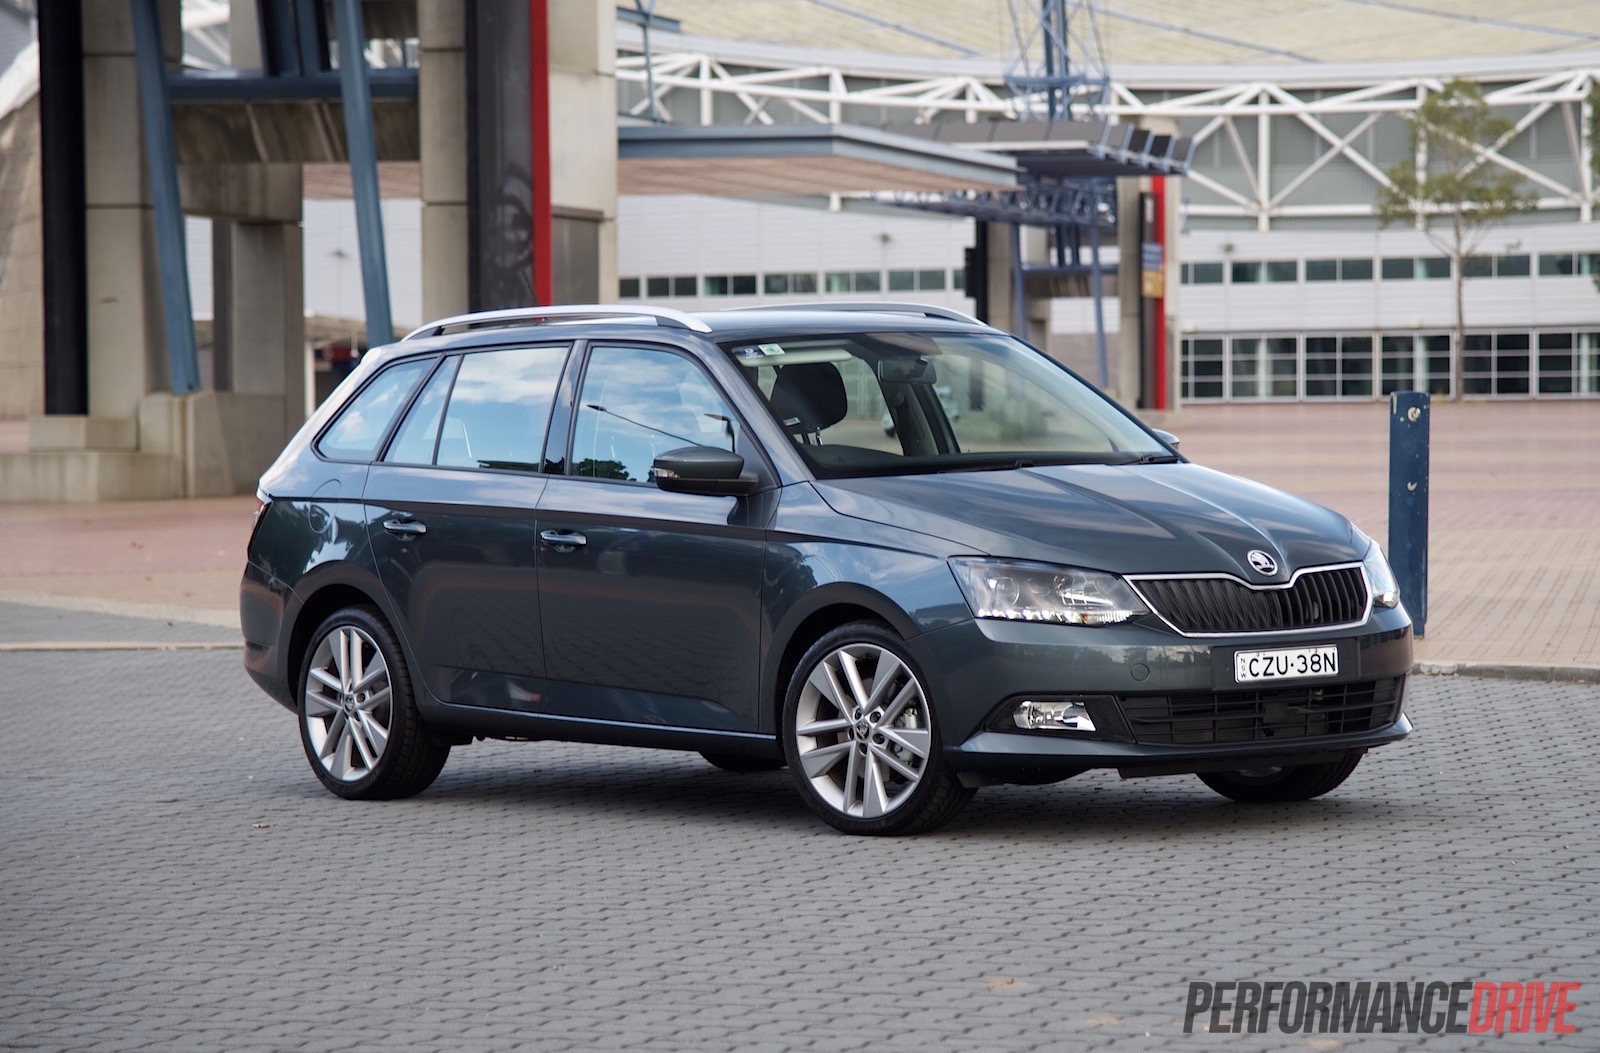 Skoda Fabia wagon - car review 90